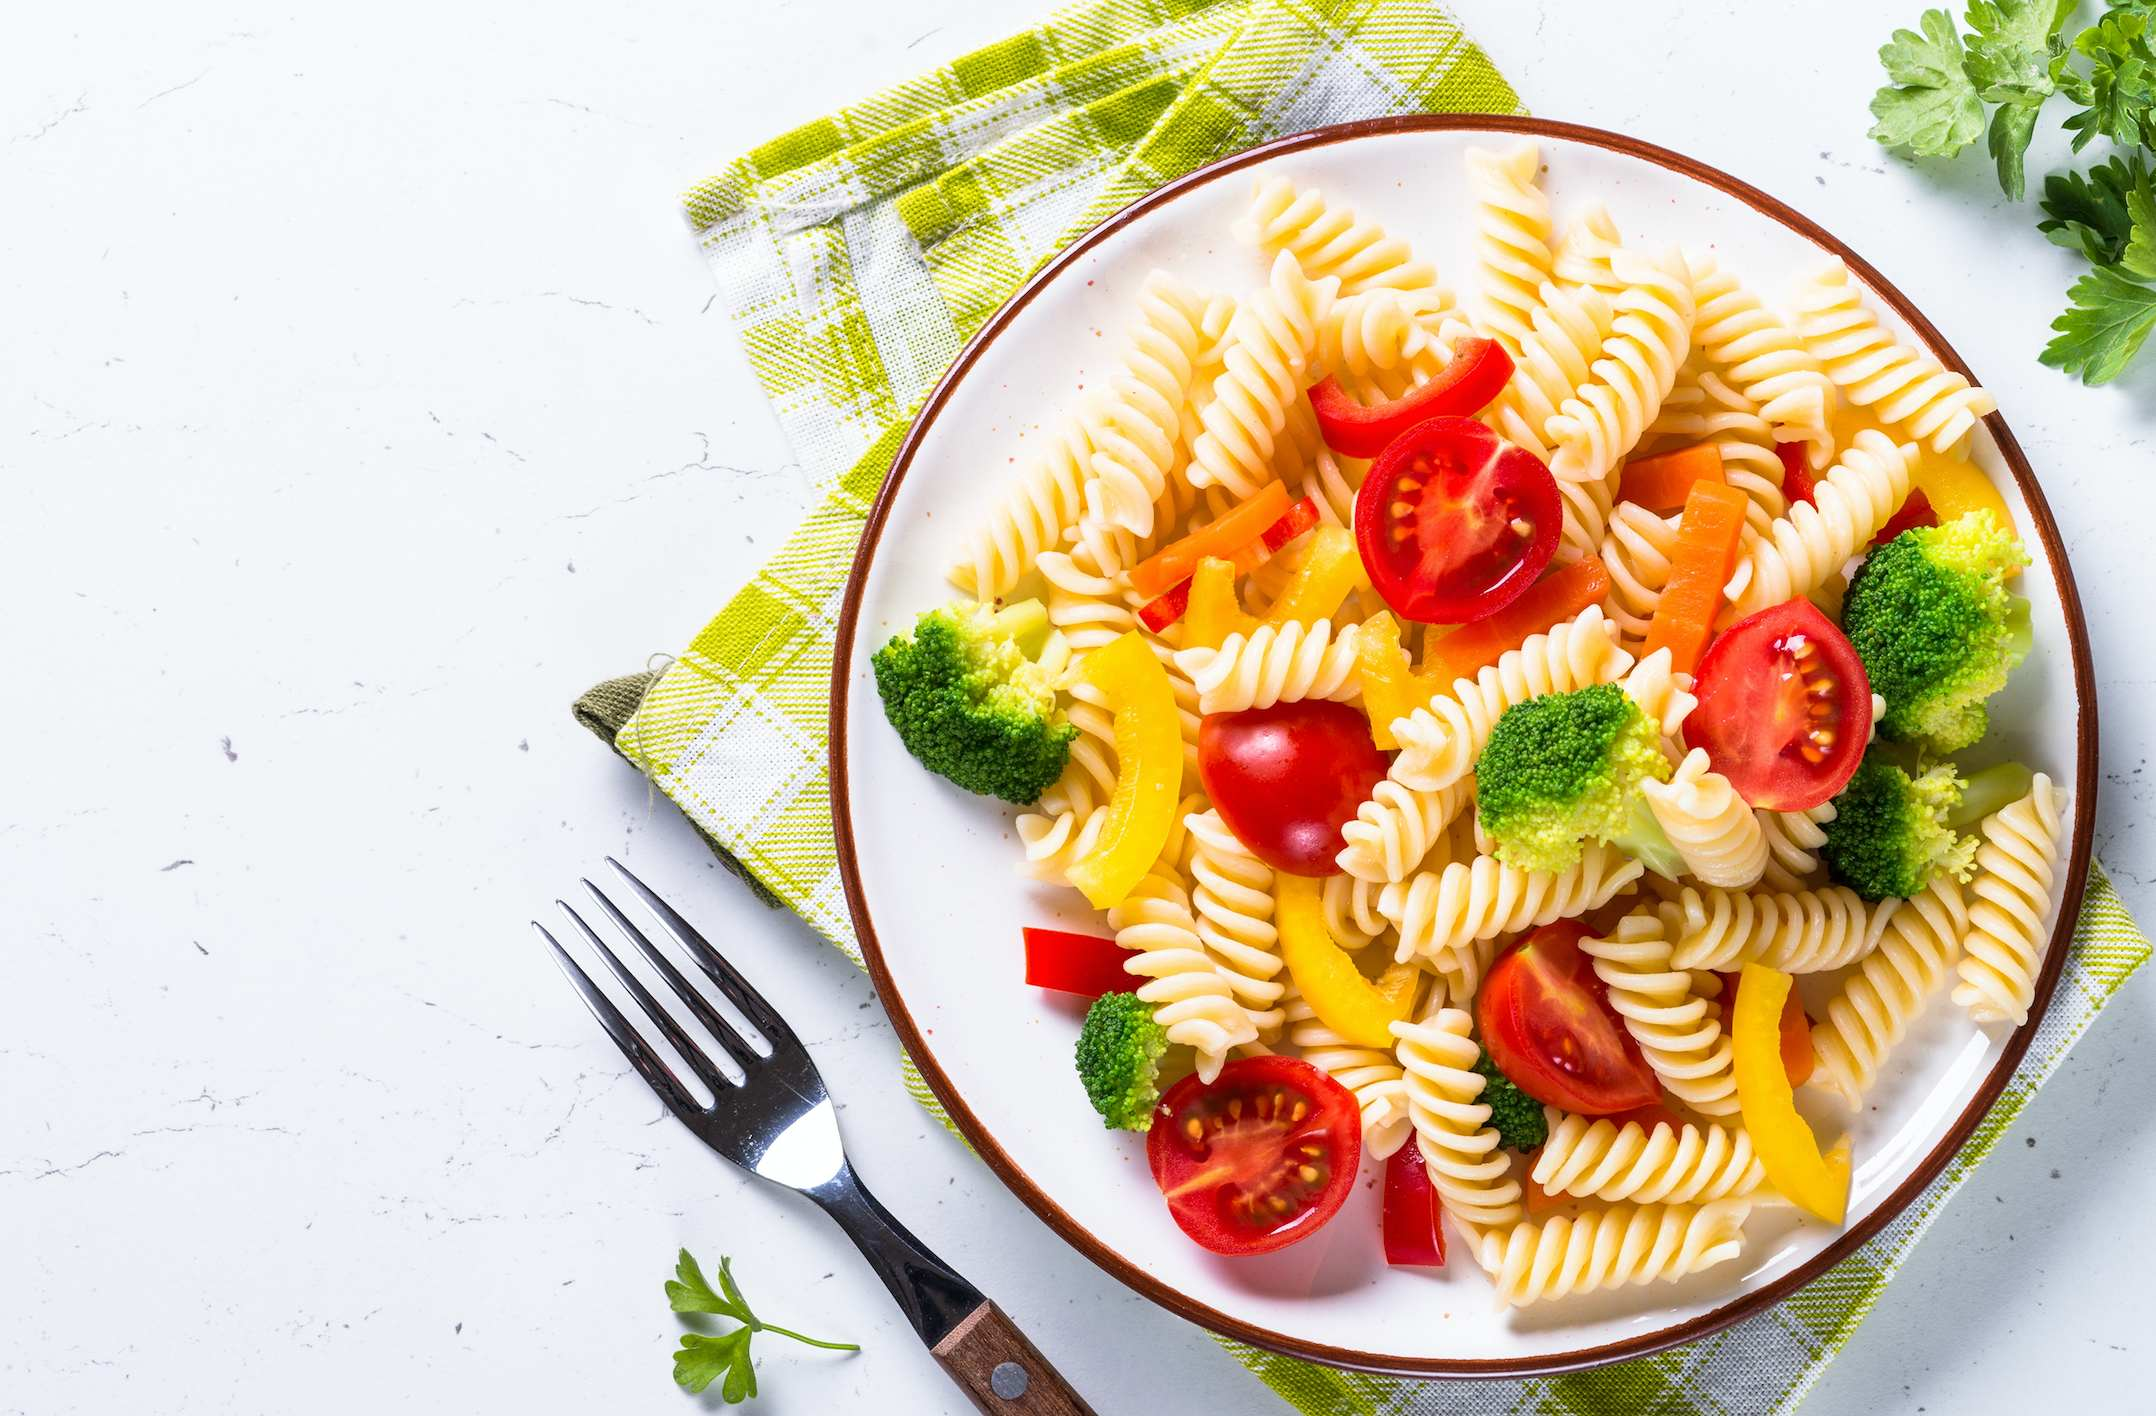 A plate of vegetable pasta